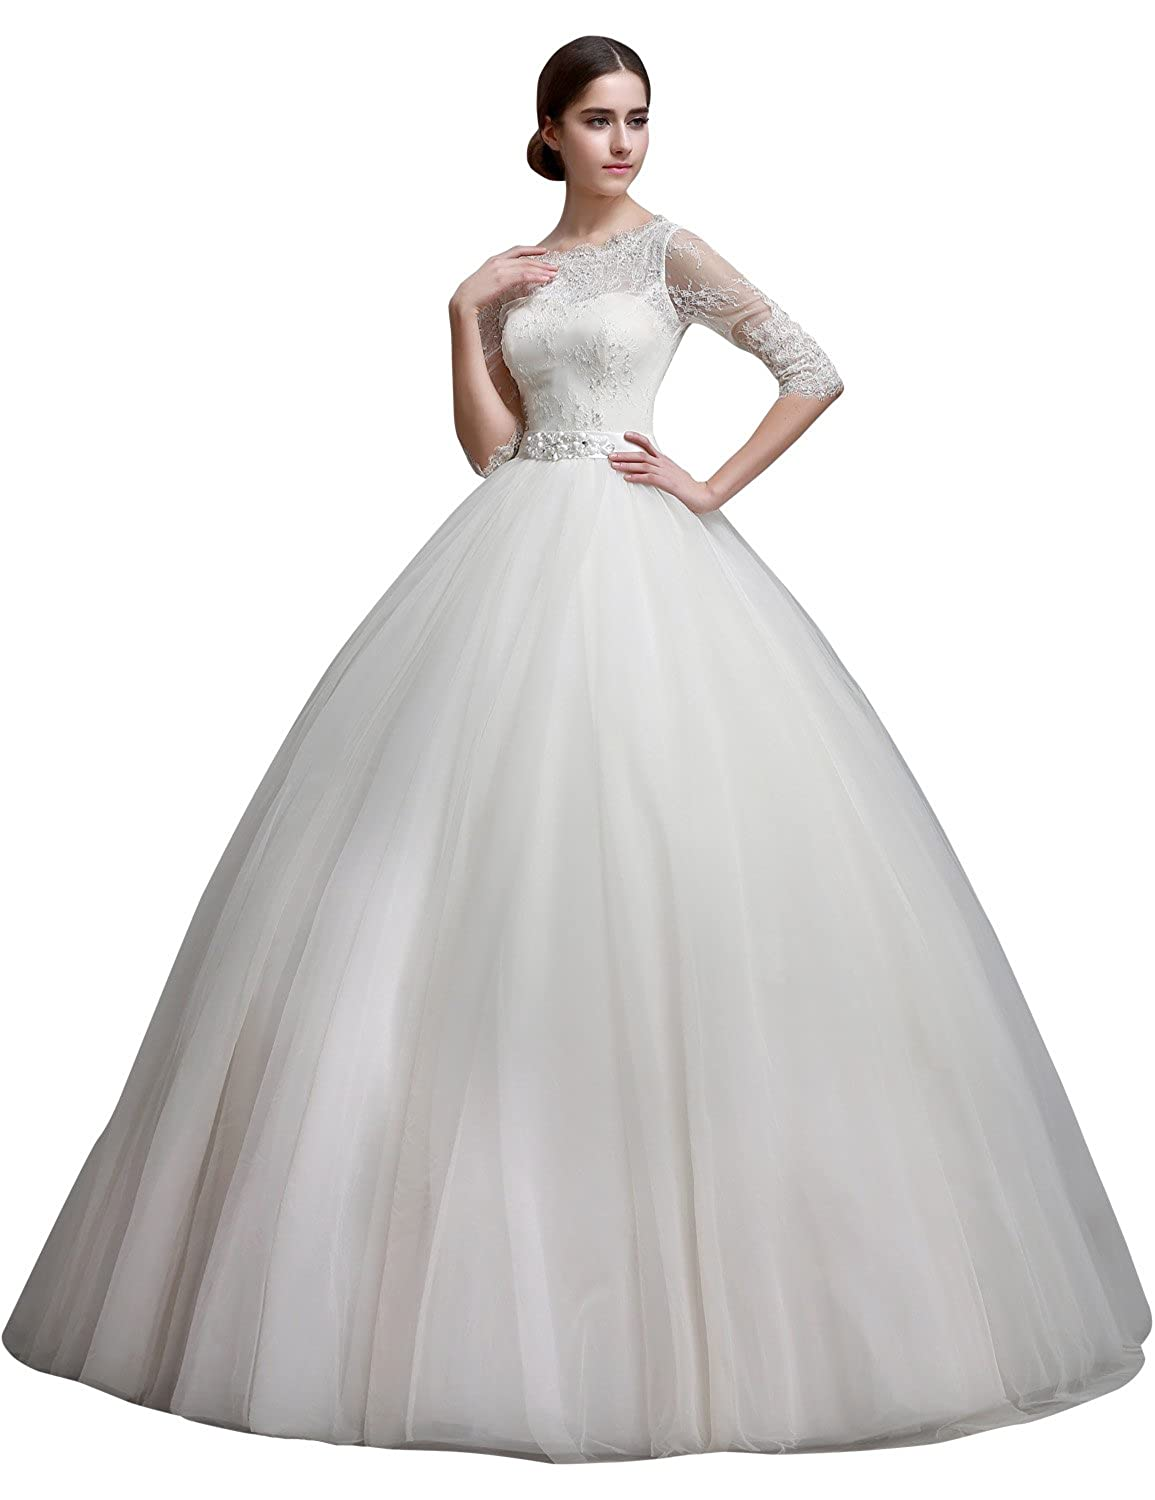 Sarahbridal Women's Long Sleeve Sheer Neck Wedding Brides Dresses Lace Bridal Ball Gown with Beaded SSQS01